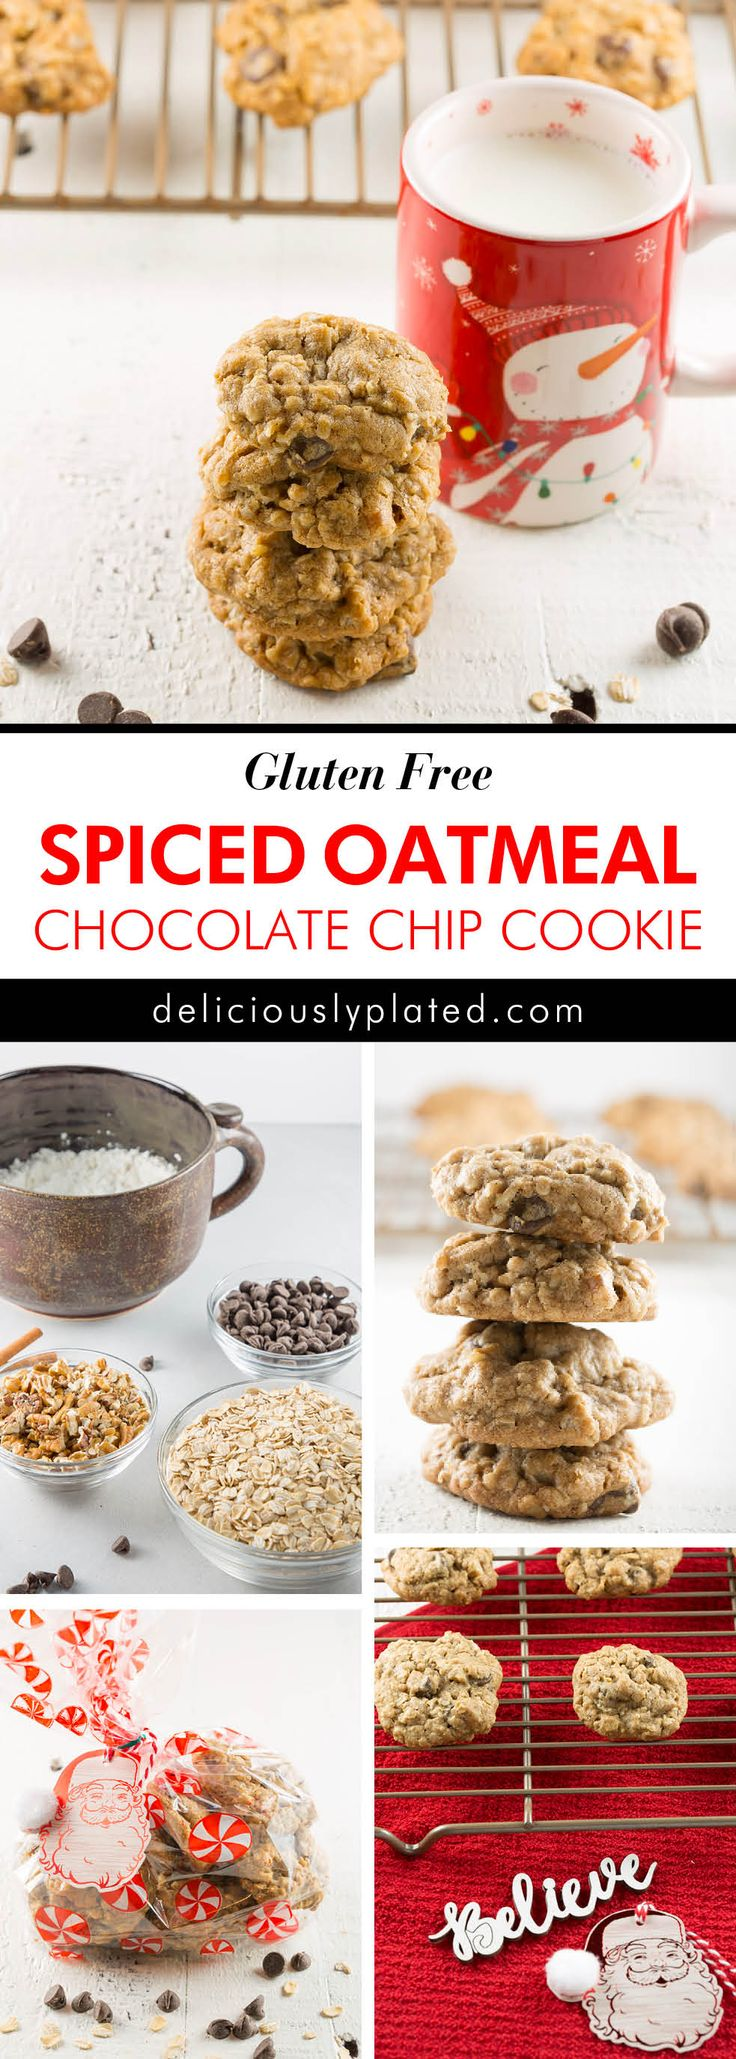 This spiced oatmeal chocolate chip #cookierecipe is amazing!  Every time I make these #cookies they are devoured! #recipe #glutenfree #christmascookie